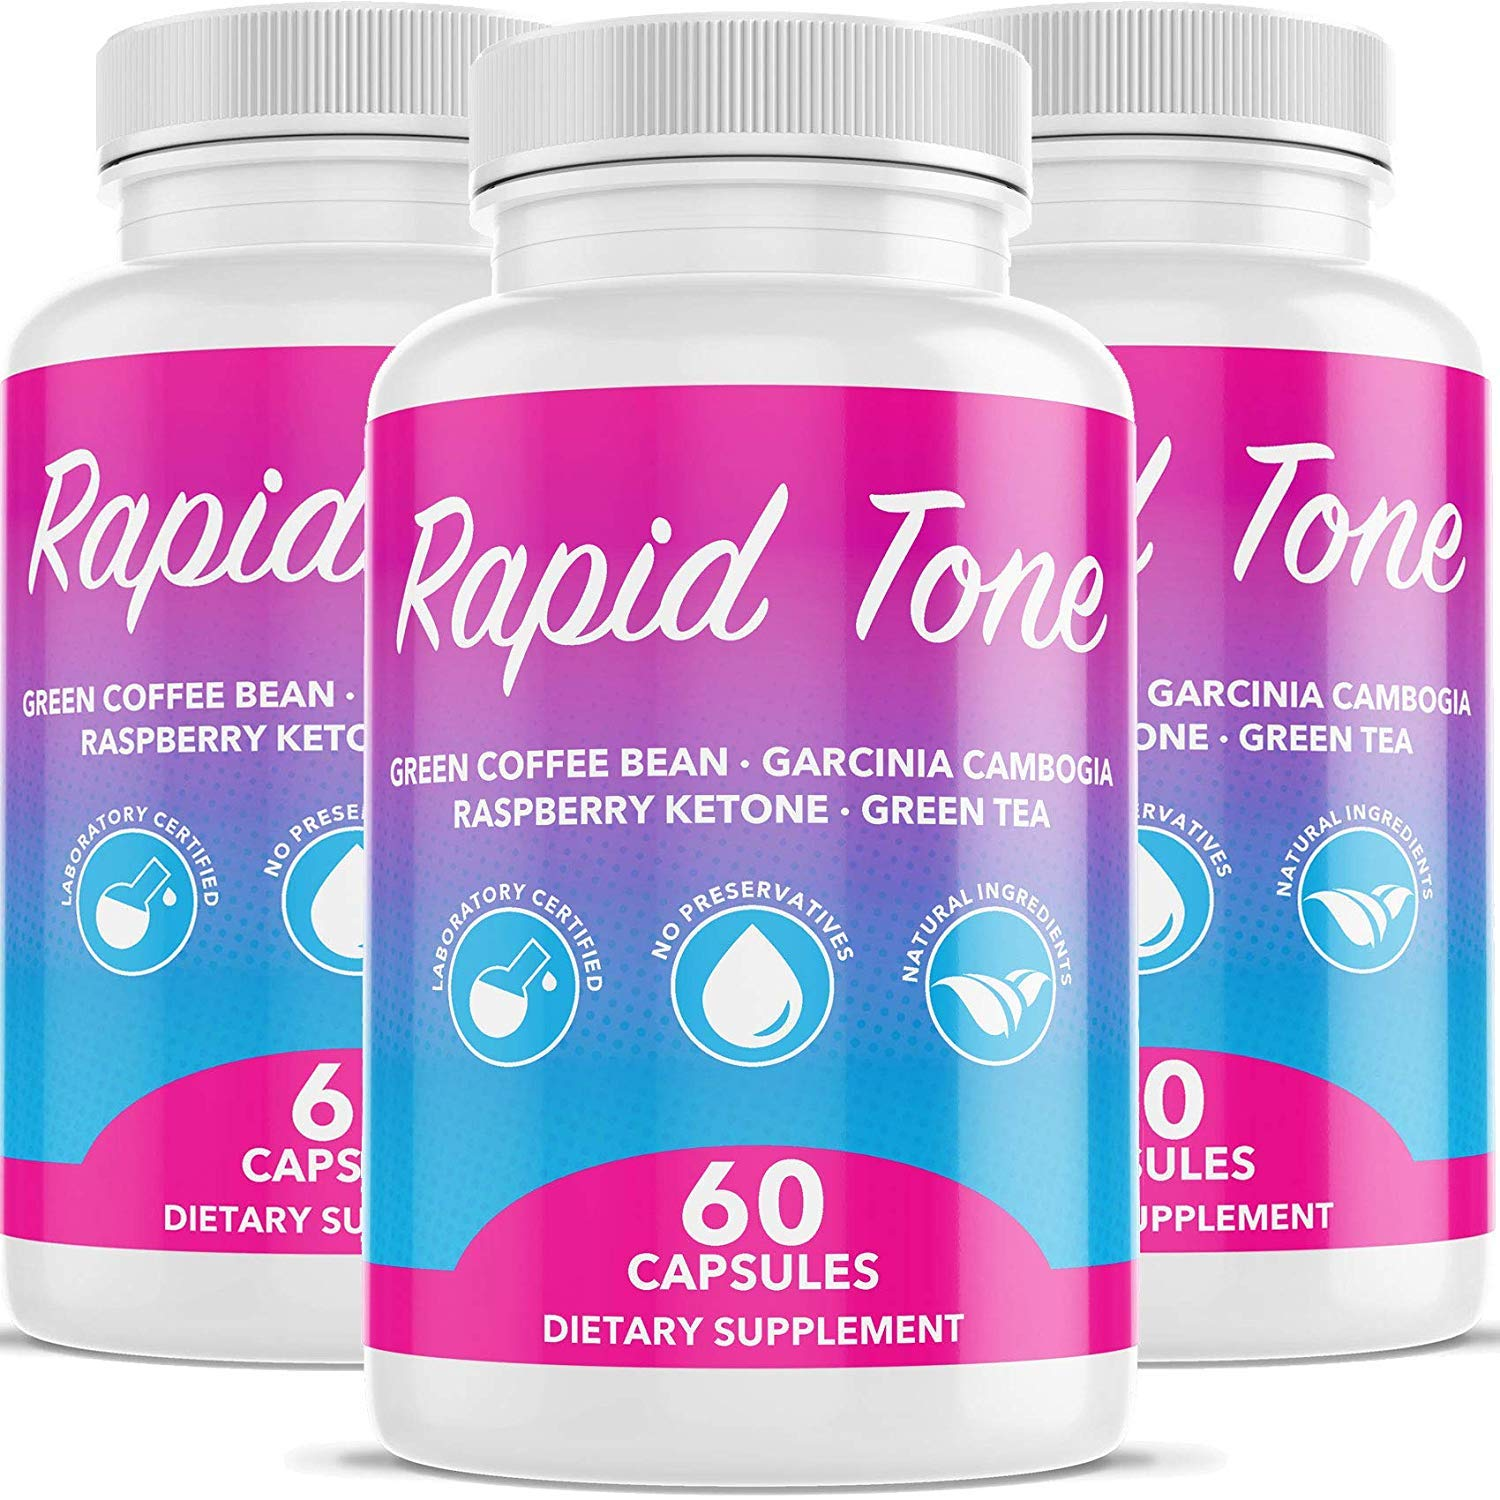 Rapid Tone Weight Loss Pills Supplement - Burn Fat Quicker - Carb Blocker, Appetite Suppressant, Fat Burner - Natural Thermogenic Extreme Diet Fast WeightLoss for Women Men (3 Month Supply) by Rapid Tone